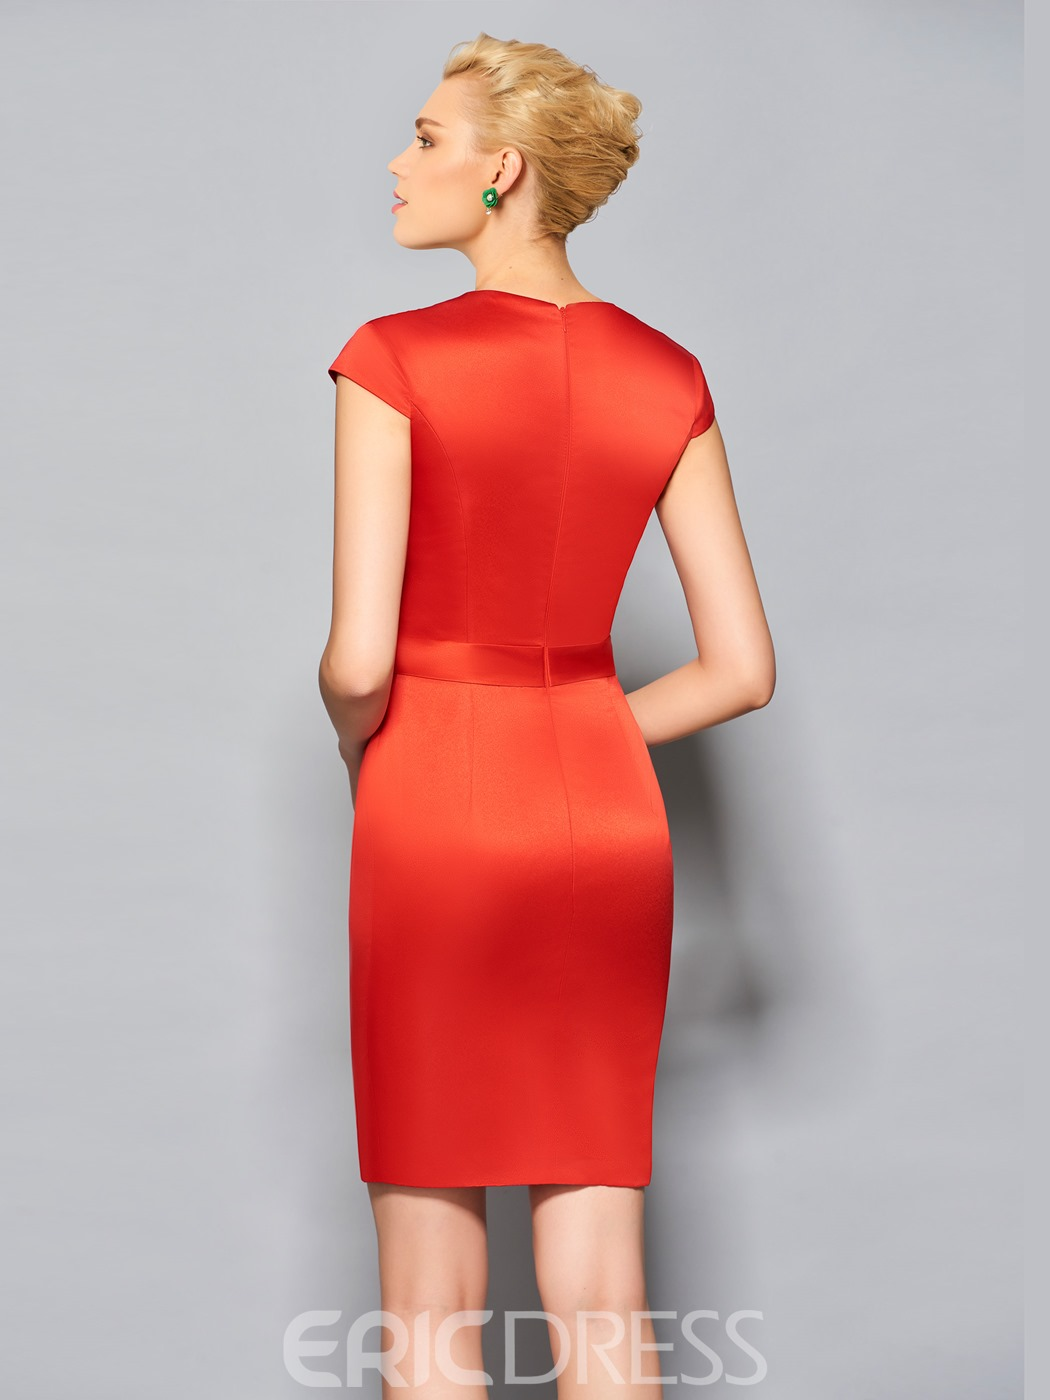 Ericdress Sheath Cap Sleeve Bowknot Front Short Cocktail Dress